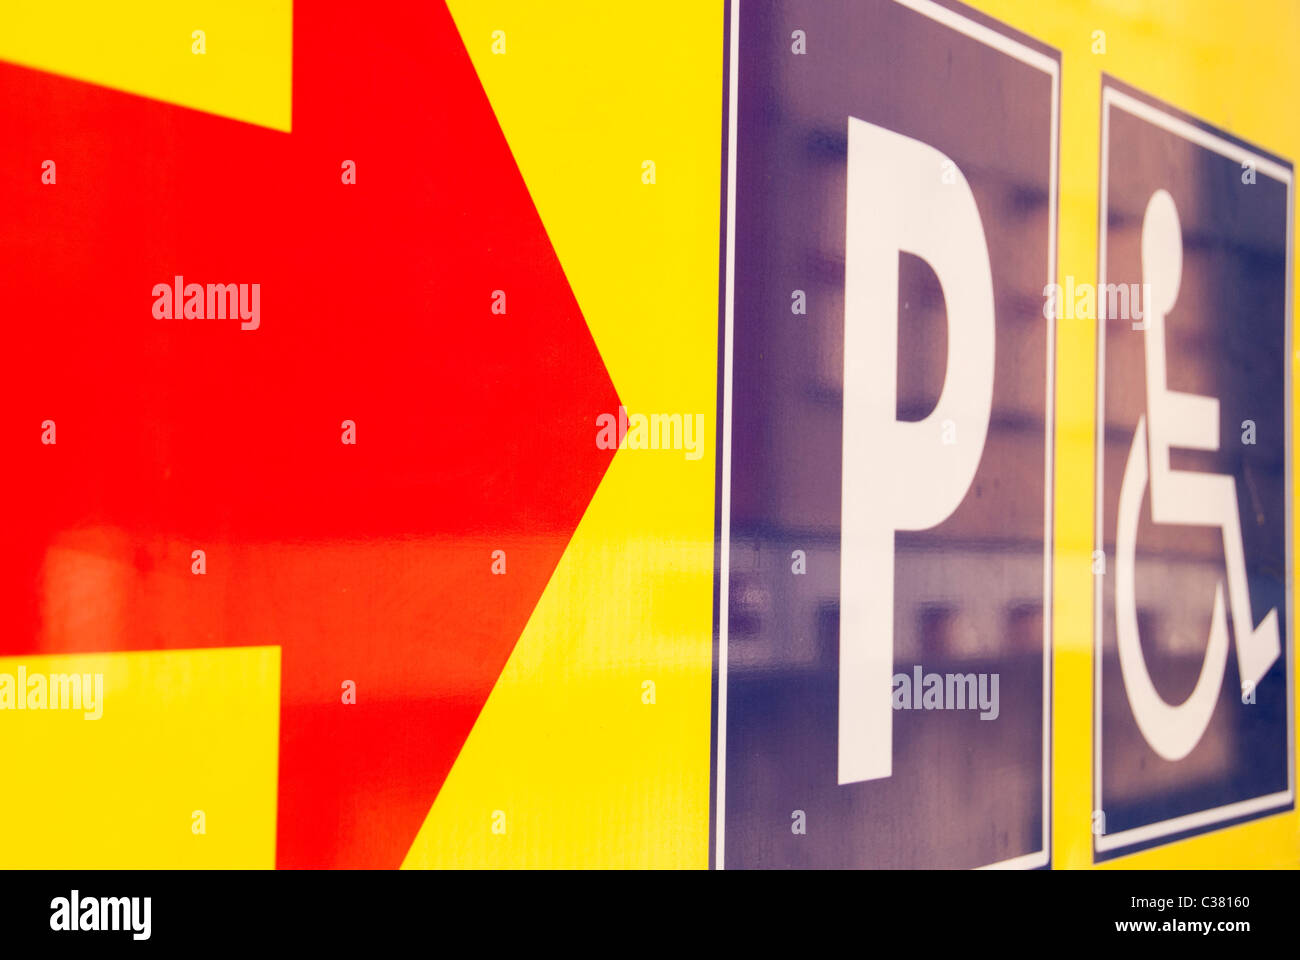 indication for parking and disabled people spots - Stock Image